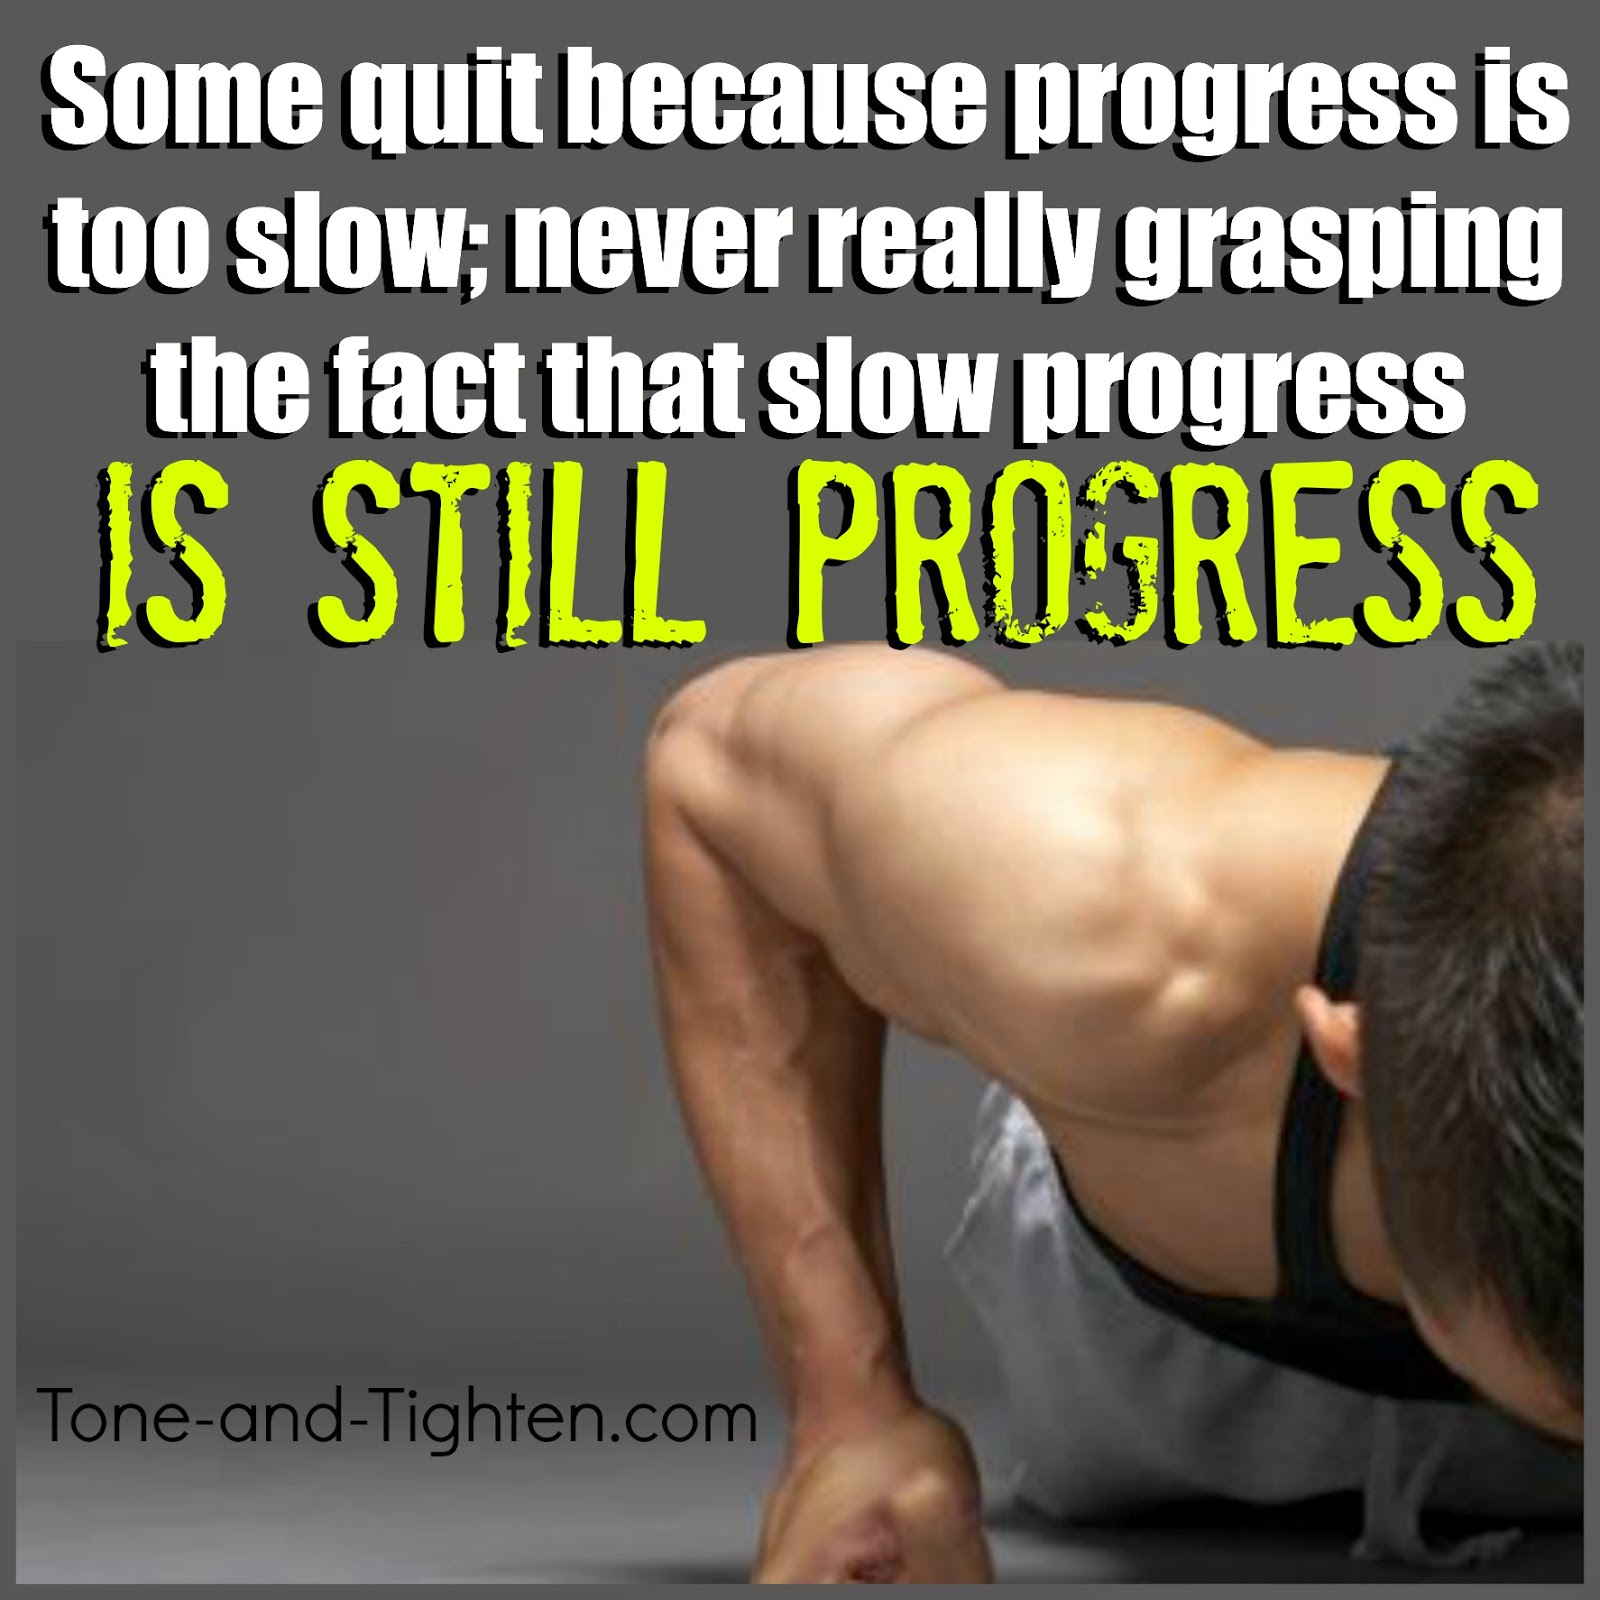 https://tone-and-tighten.com/2014/02/fitness-motivation-slow-progress-is-still-progress.html